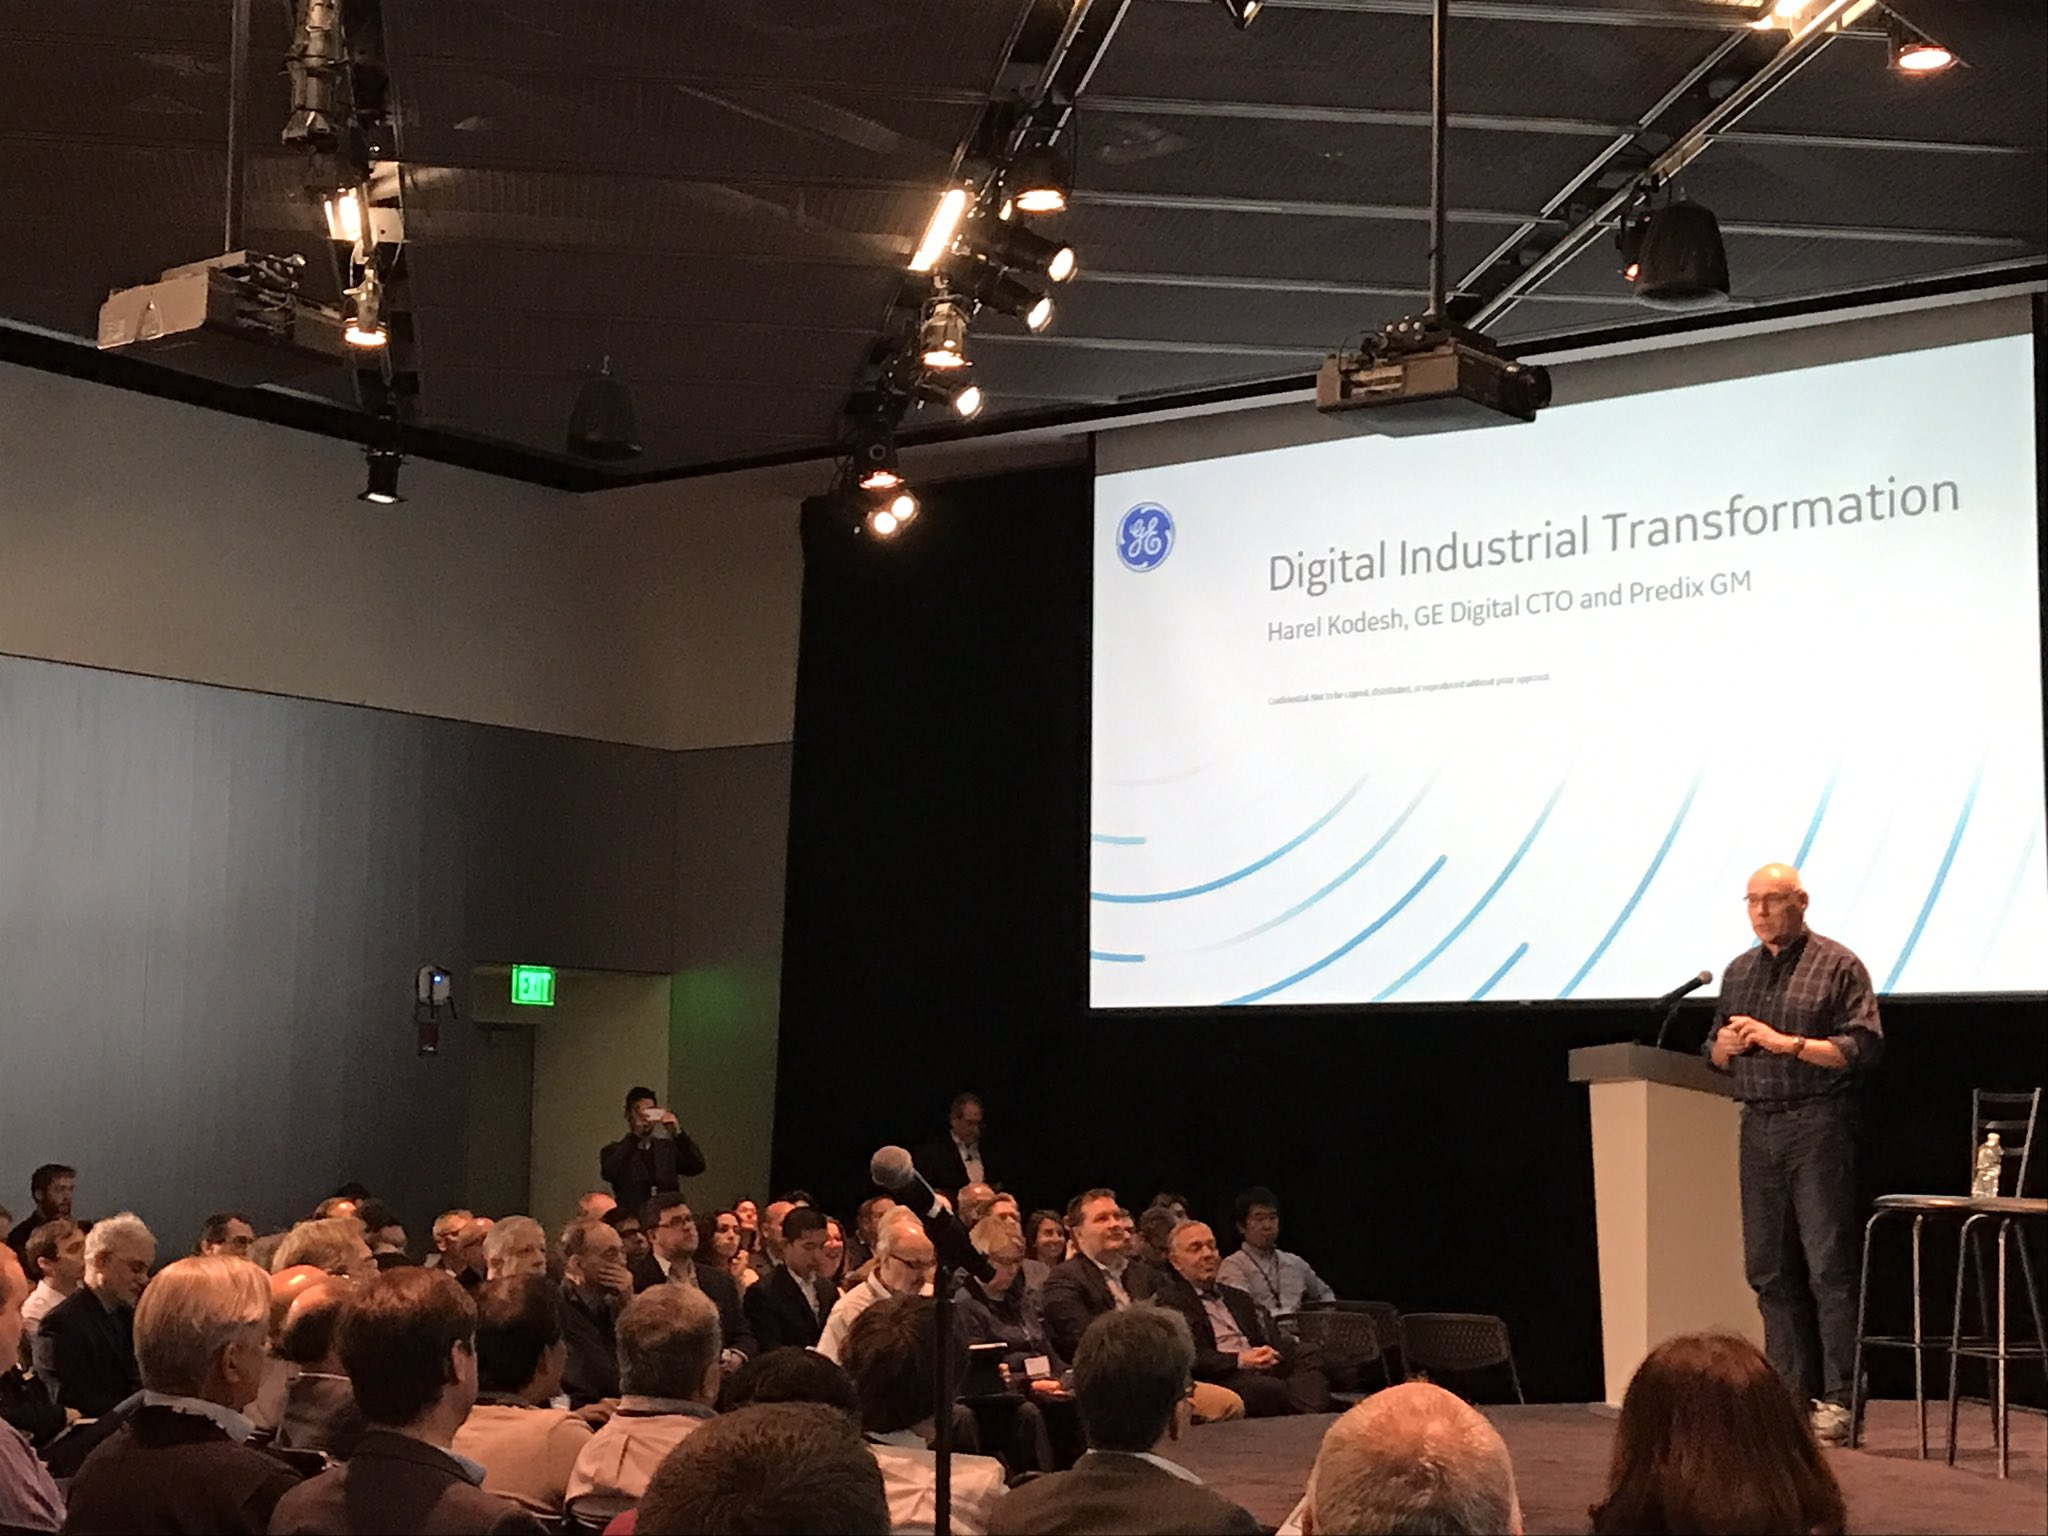 @harelk from @GE_Digital talks about #digitaltransformation to a packed house at @medialab for #connectedthings2017 @cantinac https://t.co/ZRuehWtaPR